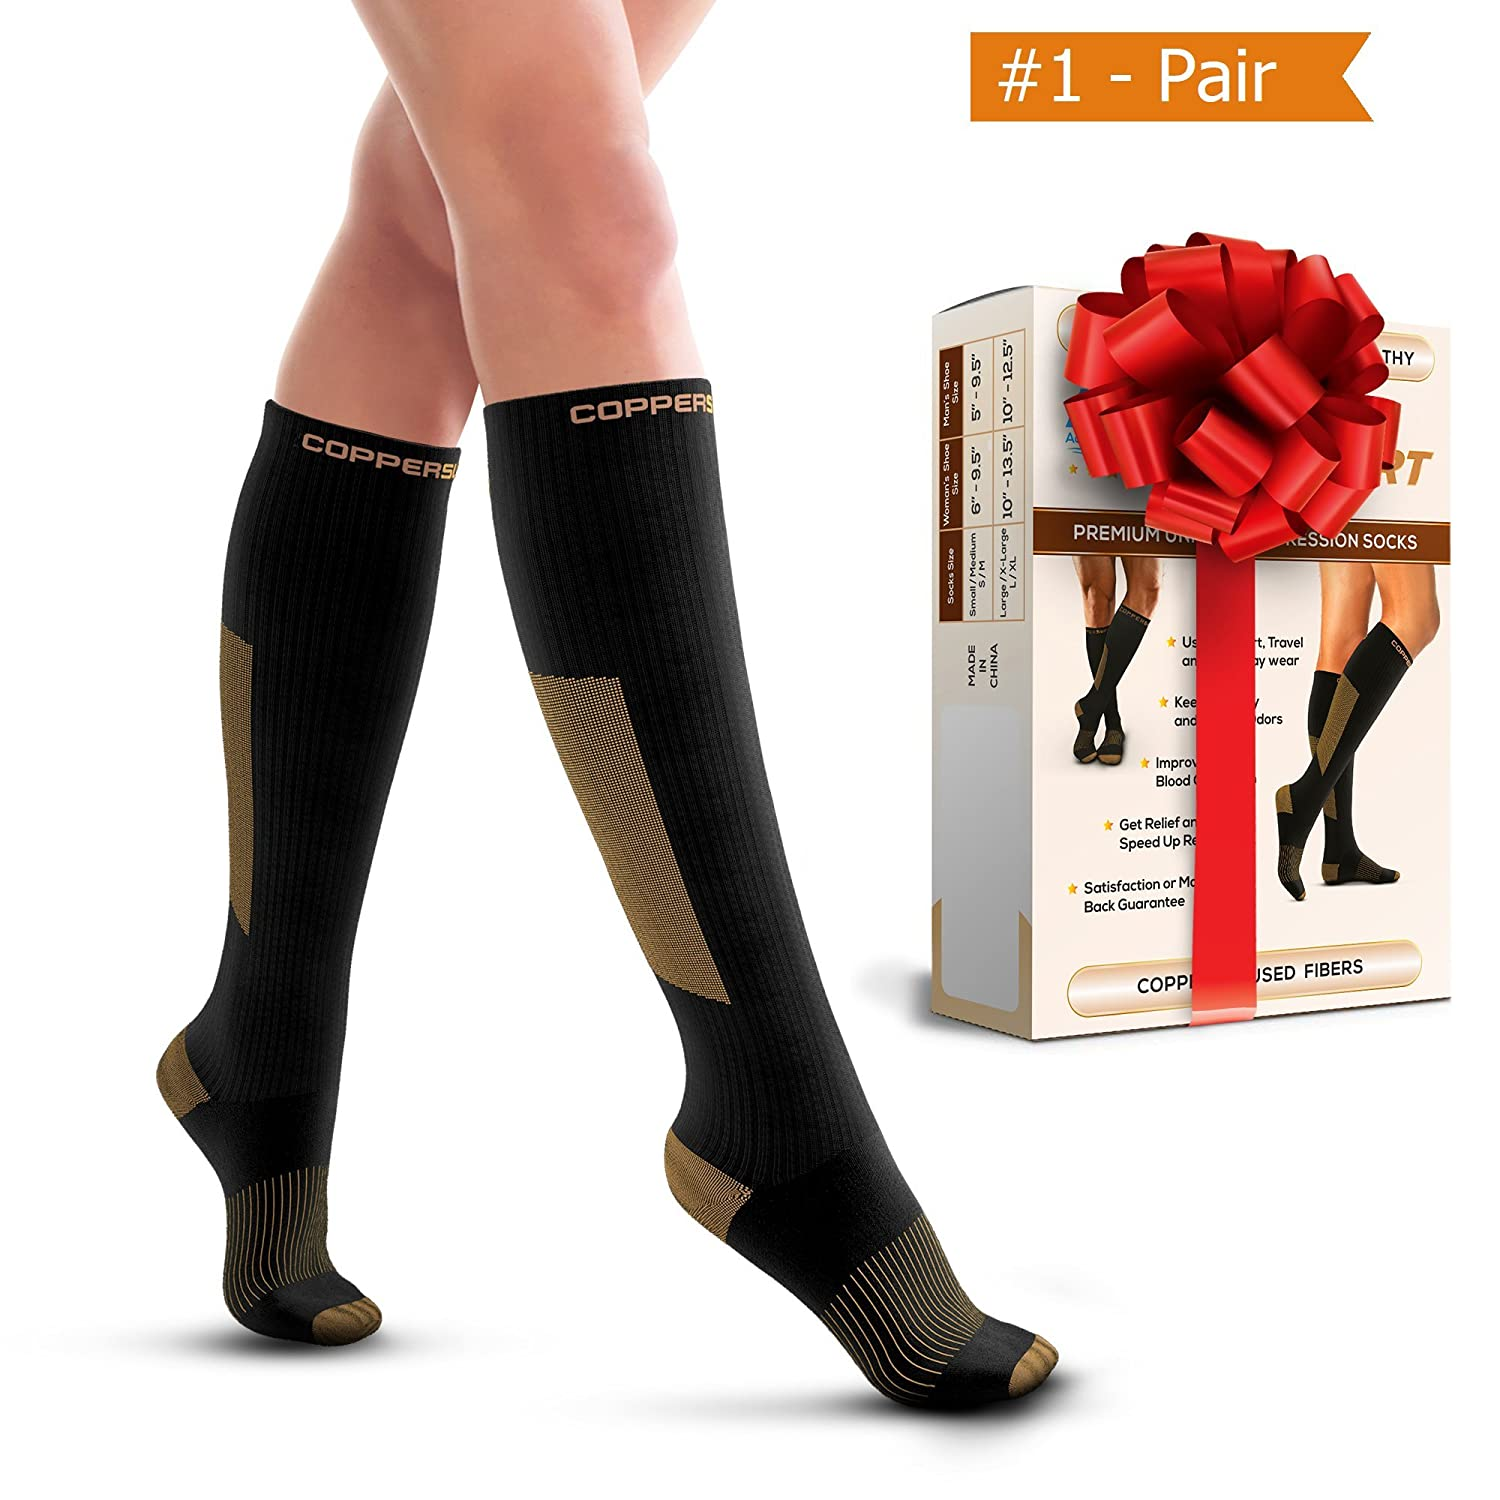 2a9a79b95 Amazon.com  Compression Socks for Men   Women - Great For Sports - Running